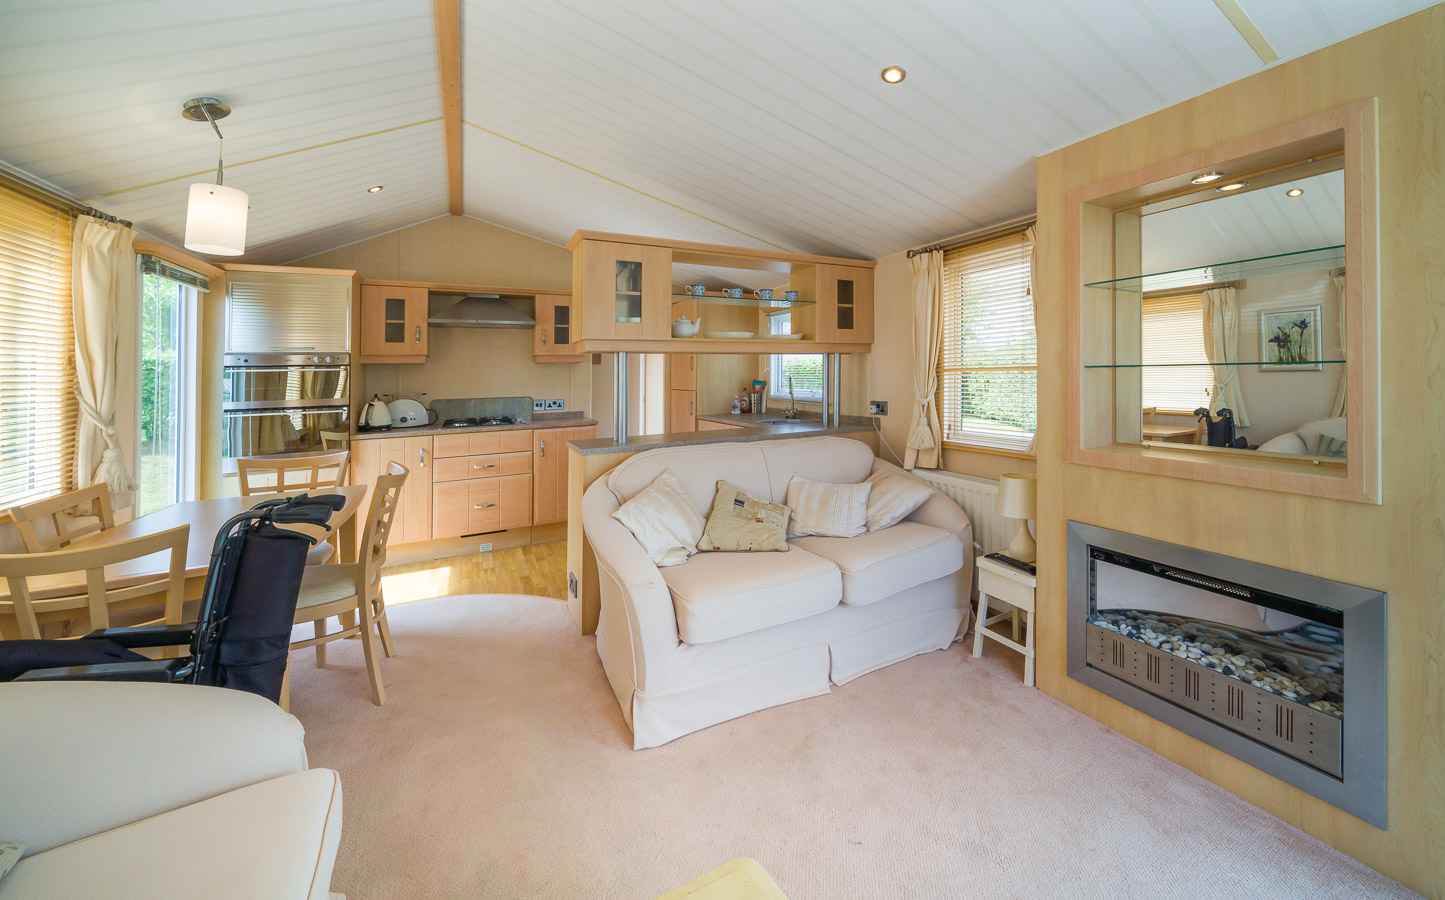 Monkton-Wyld-Static-Mobile-Holiday-Home-Sale-Plot-26-Charmouth-Lyme-Regis-West-Dorset-7